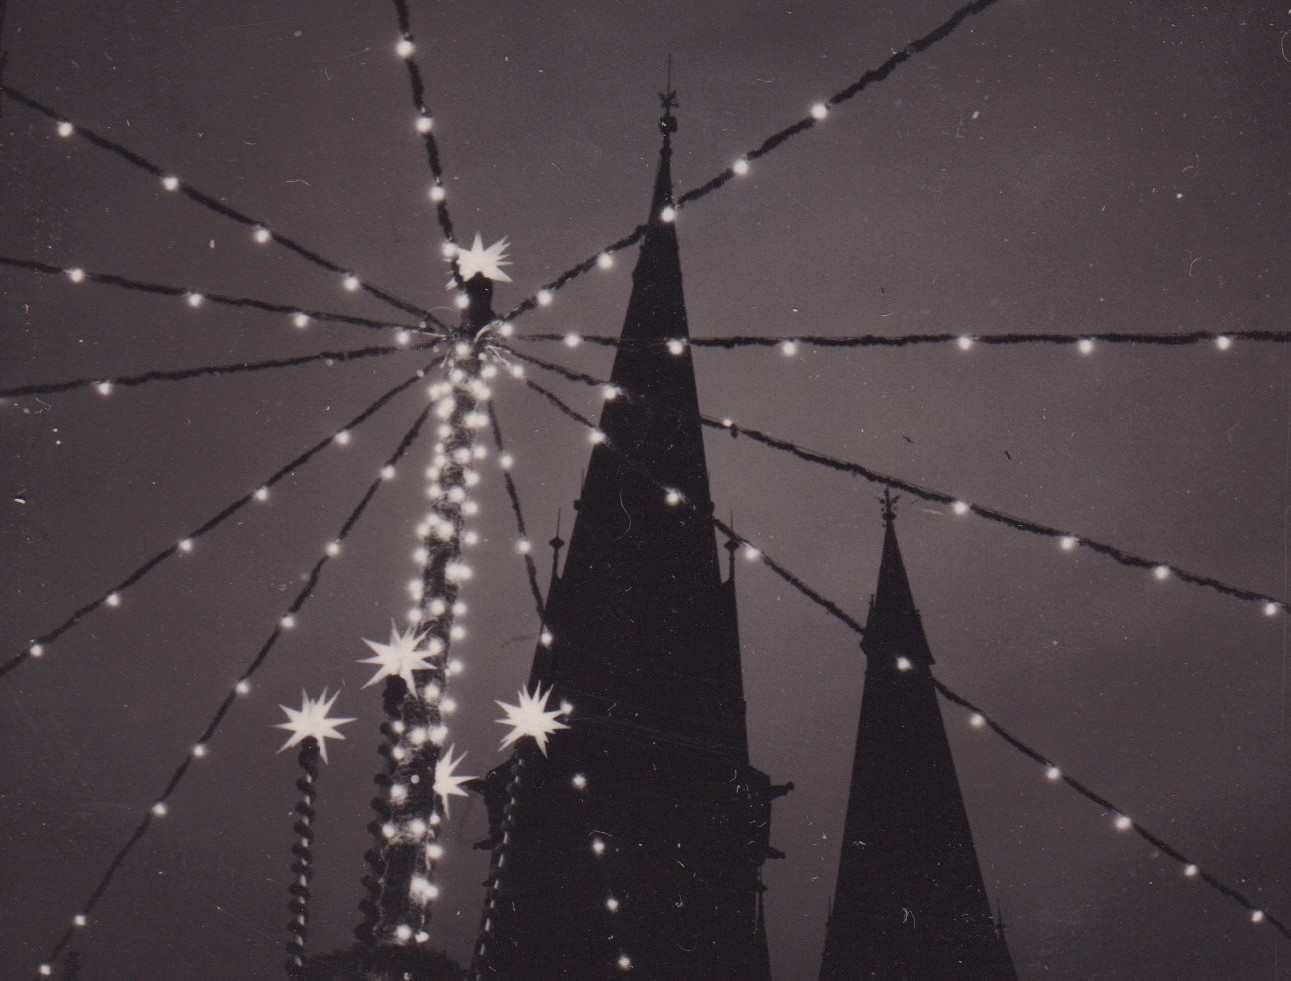 Die Lamberti-Kirche Oldenburg in der Adventszeit 1960, © Bildarchiv Stadtmuseum Oldenburg, Foto Günter Nordhausen